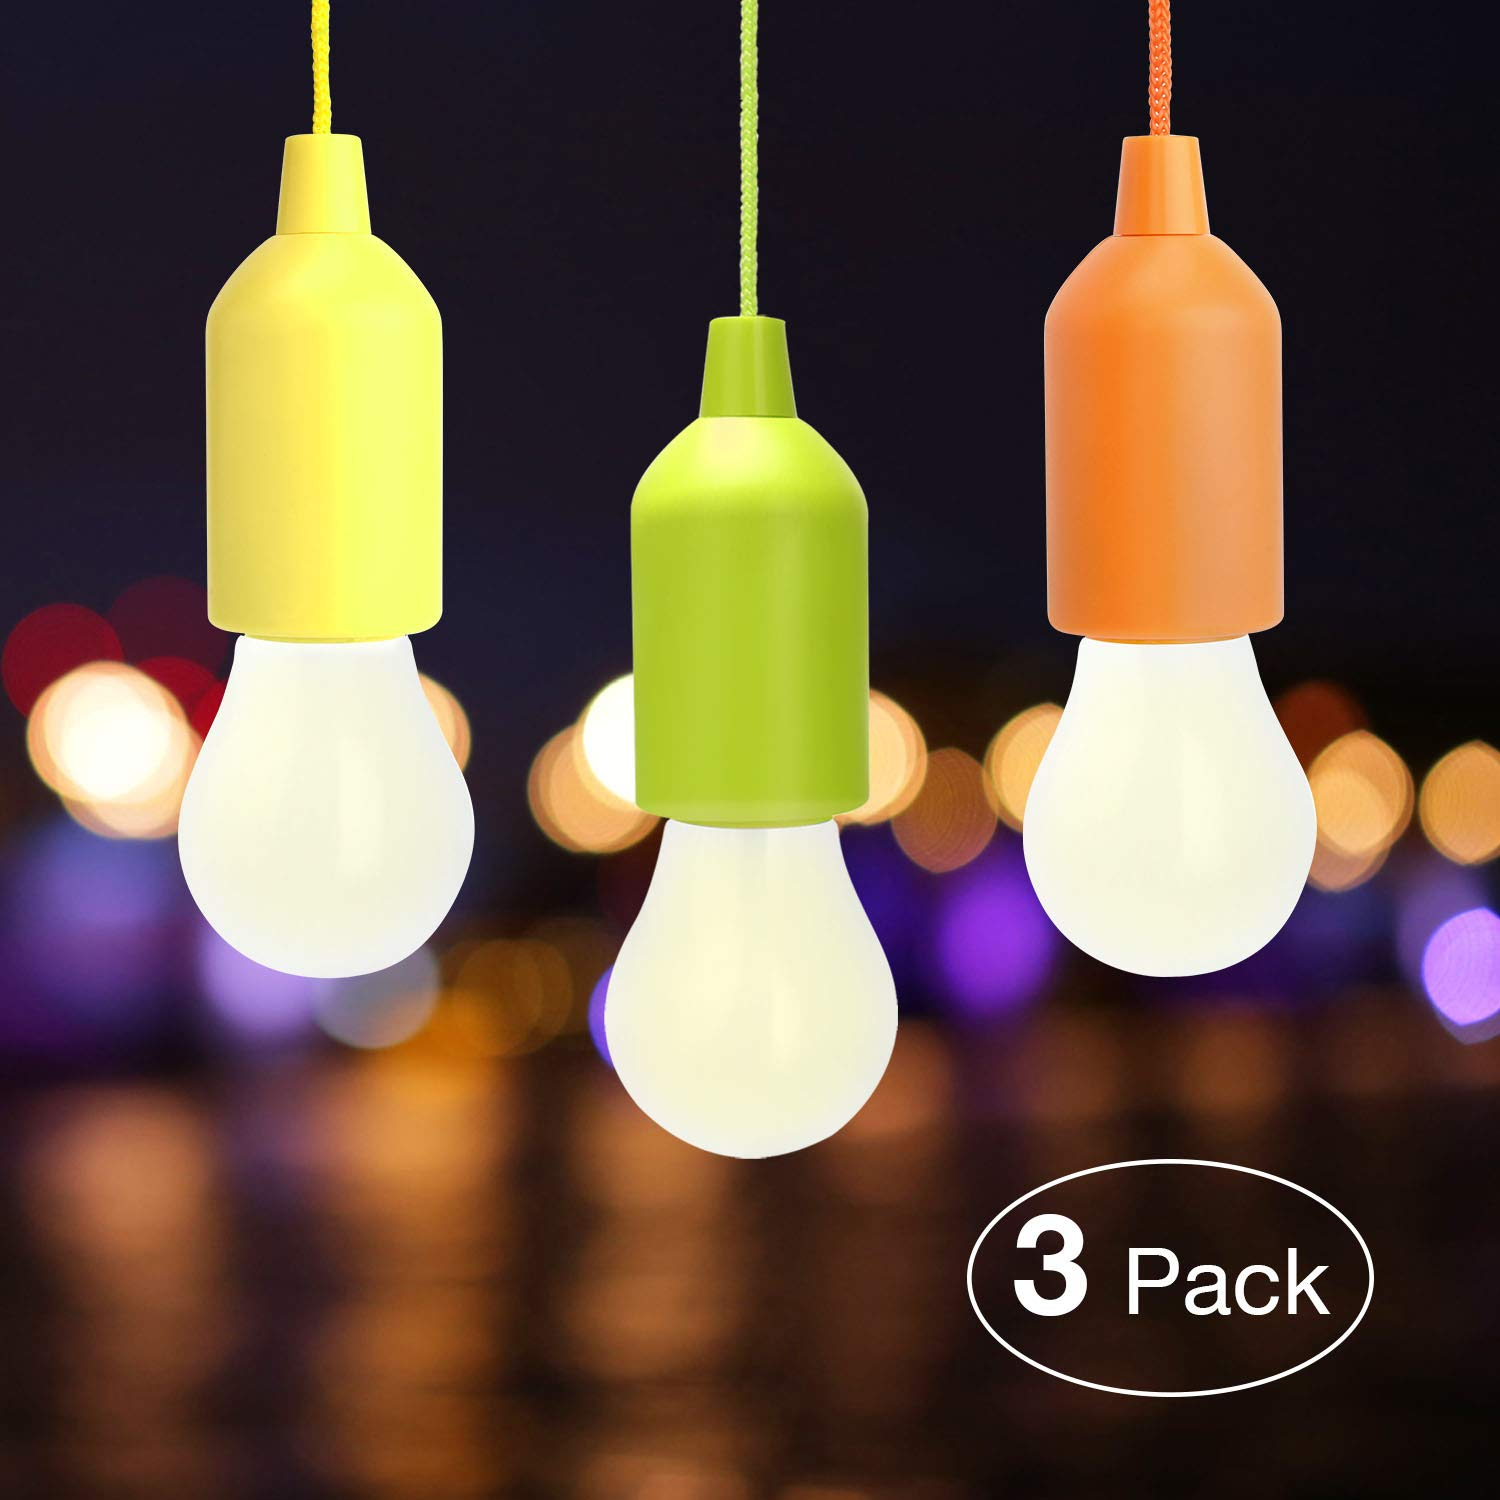 LED Camping Lamp, Light Bulb, Decorative Light, Bright Camping Light for Camping Hiking Night Fishing Emergency Light, Garden, Camping, Party, Wardrobe, BBQ or Decorative Lamp, Outdoor or Indoor WEBSUN